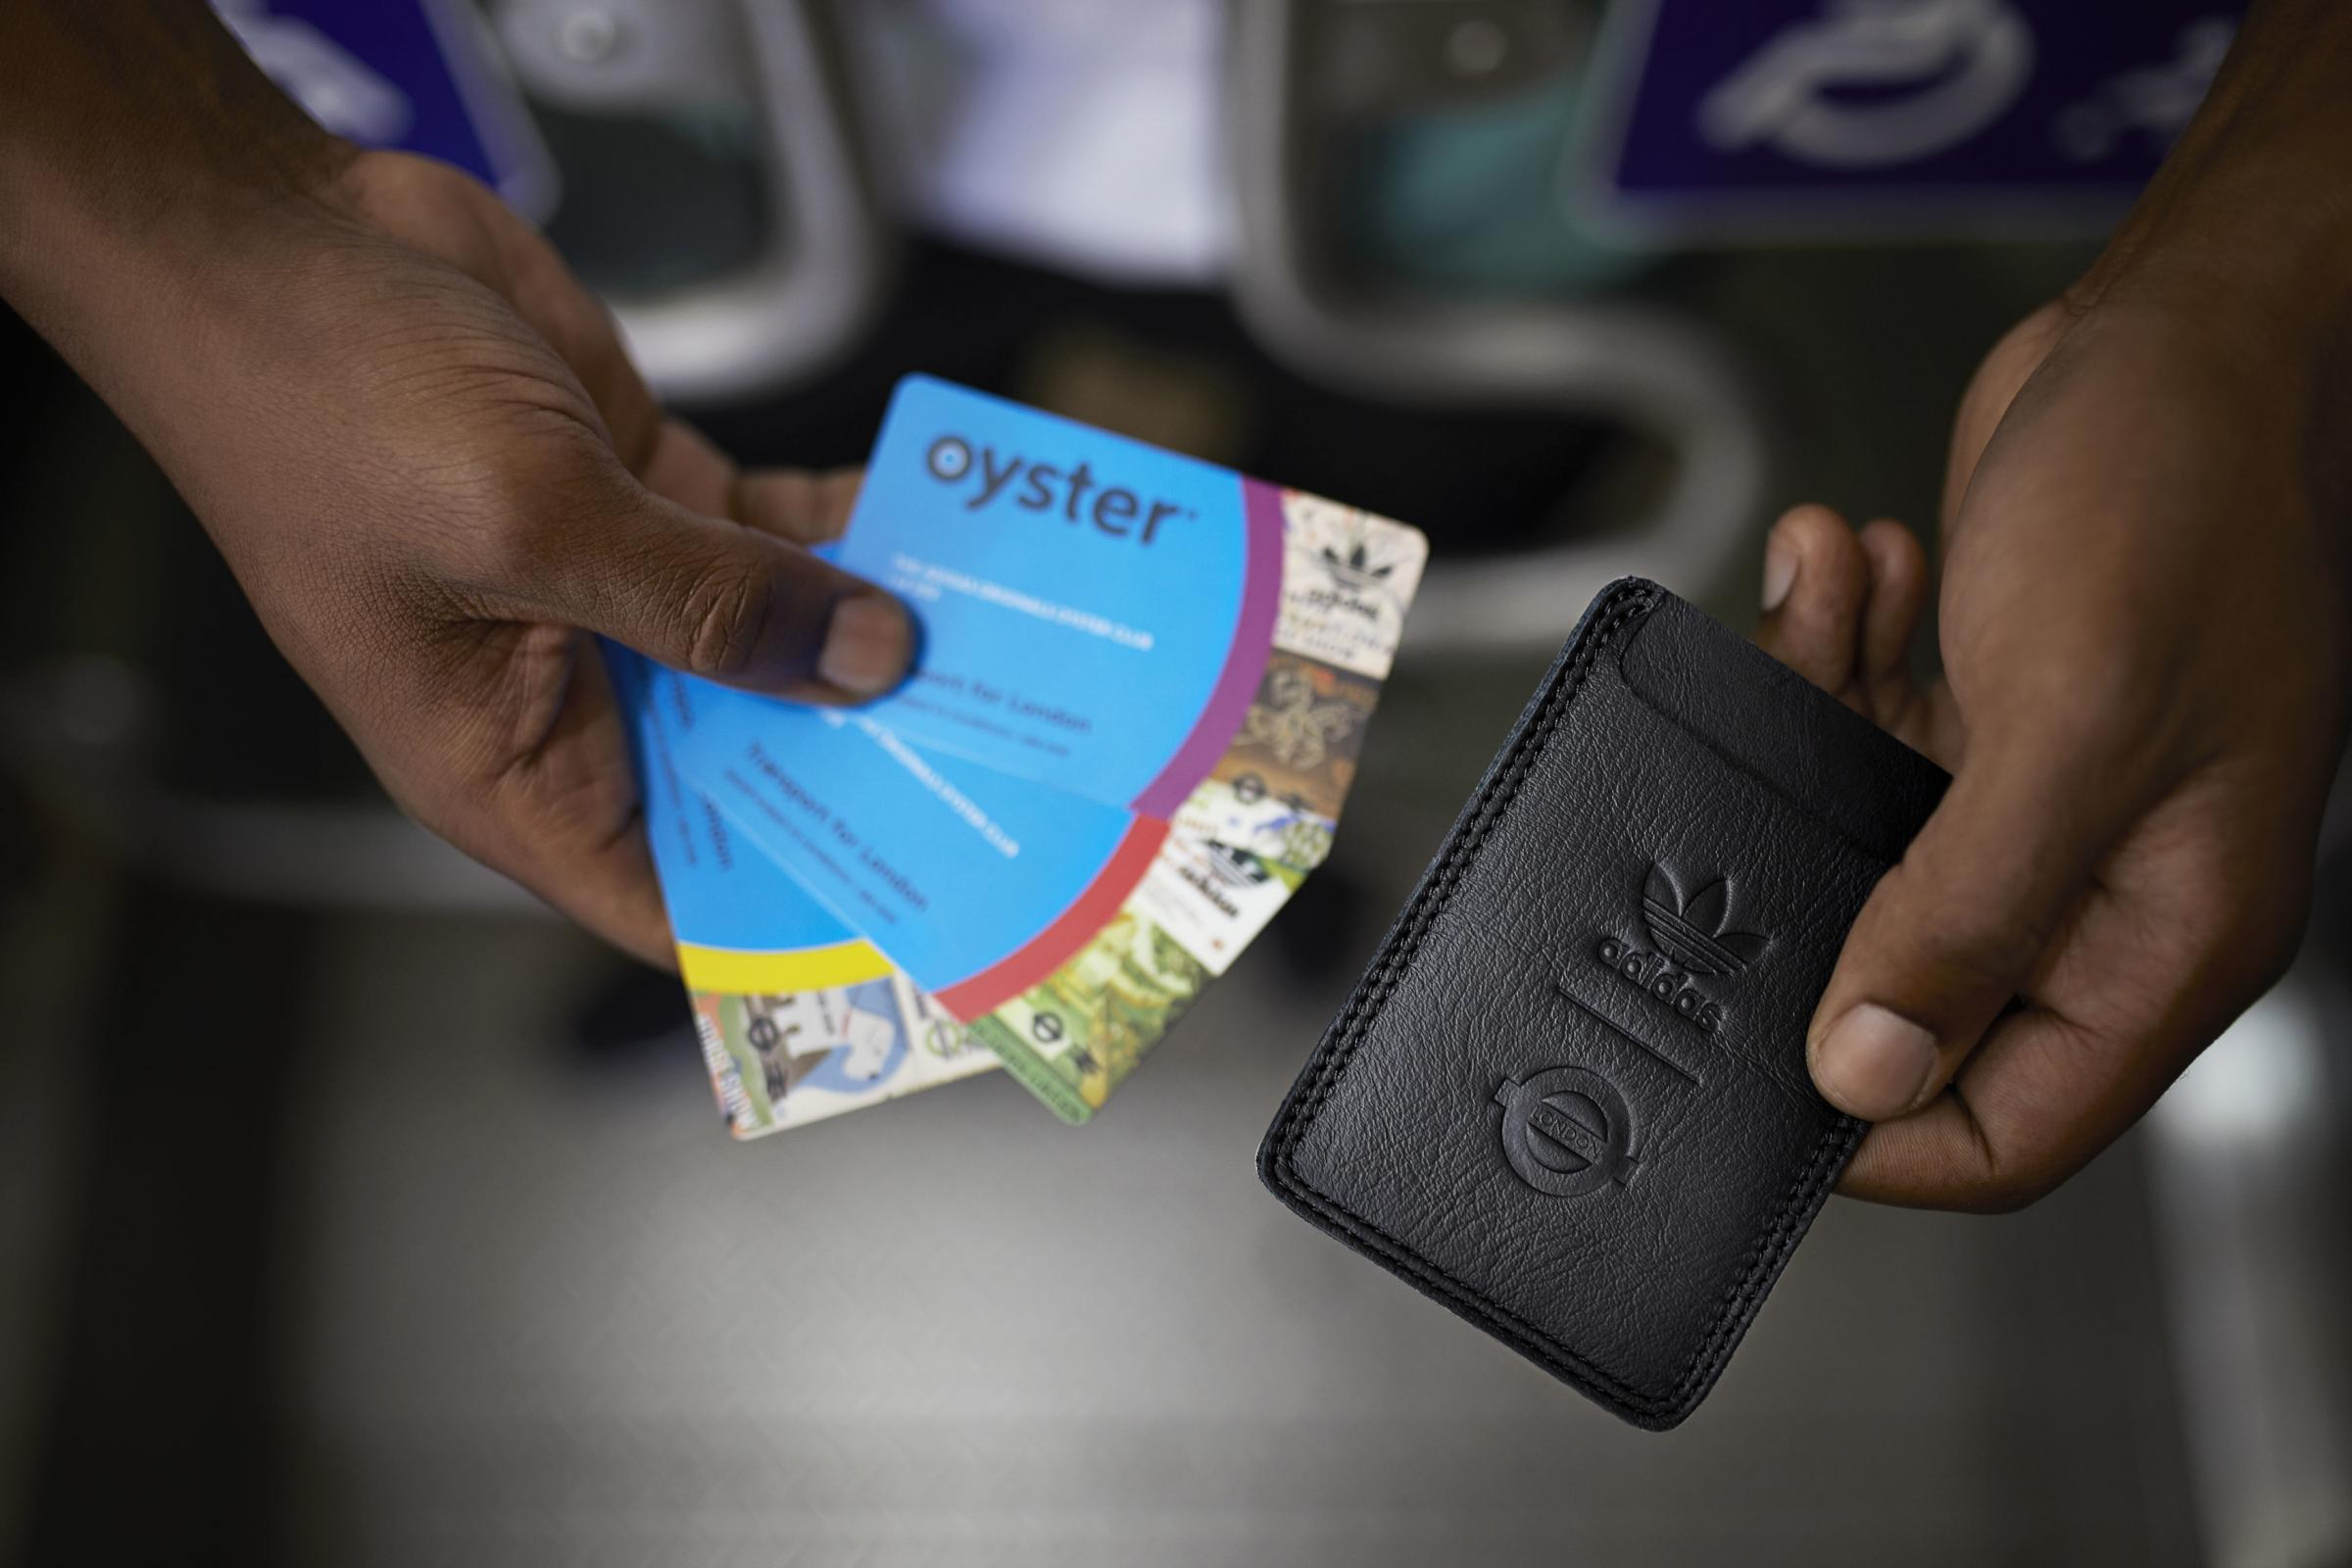 TfL offers £80 Oyster card to customers